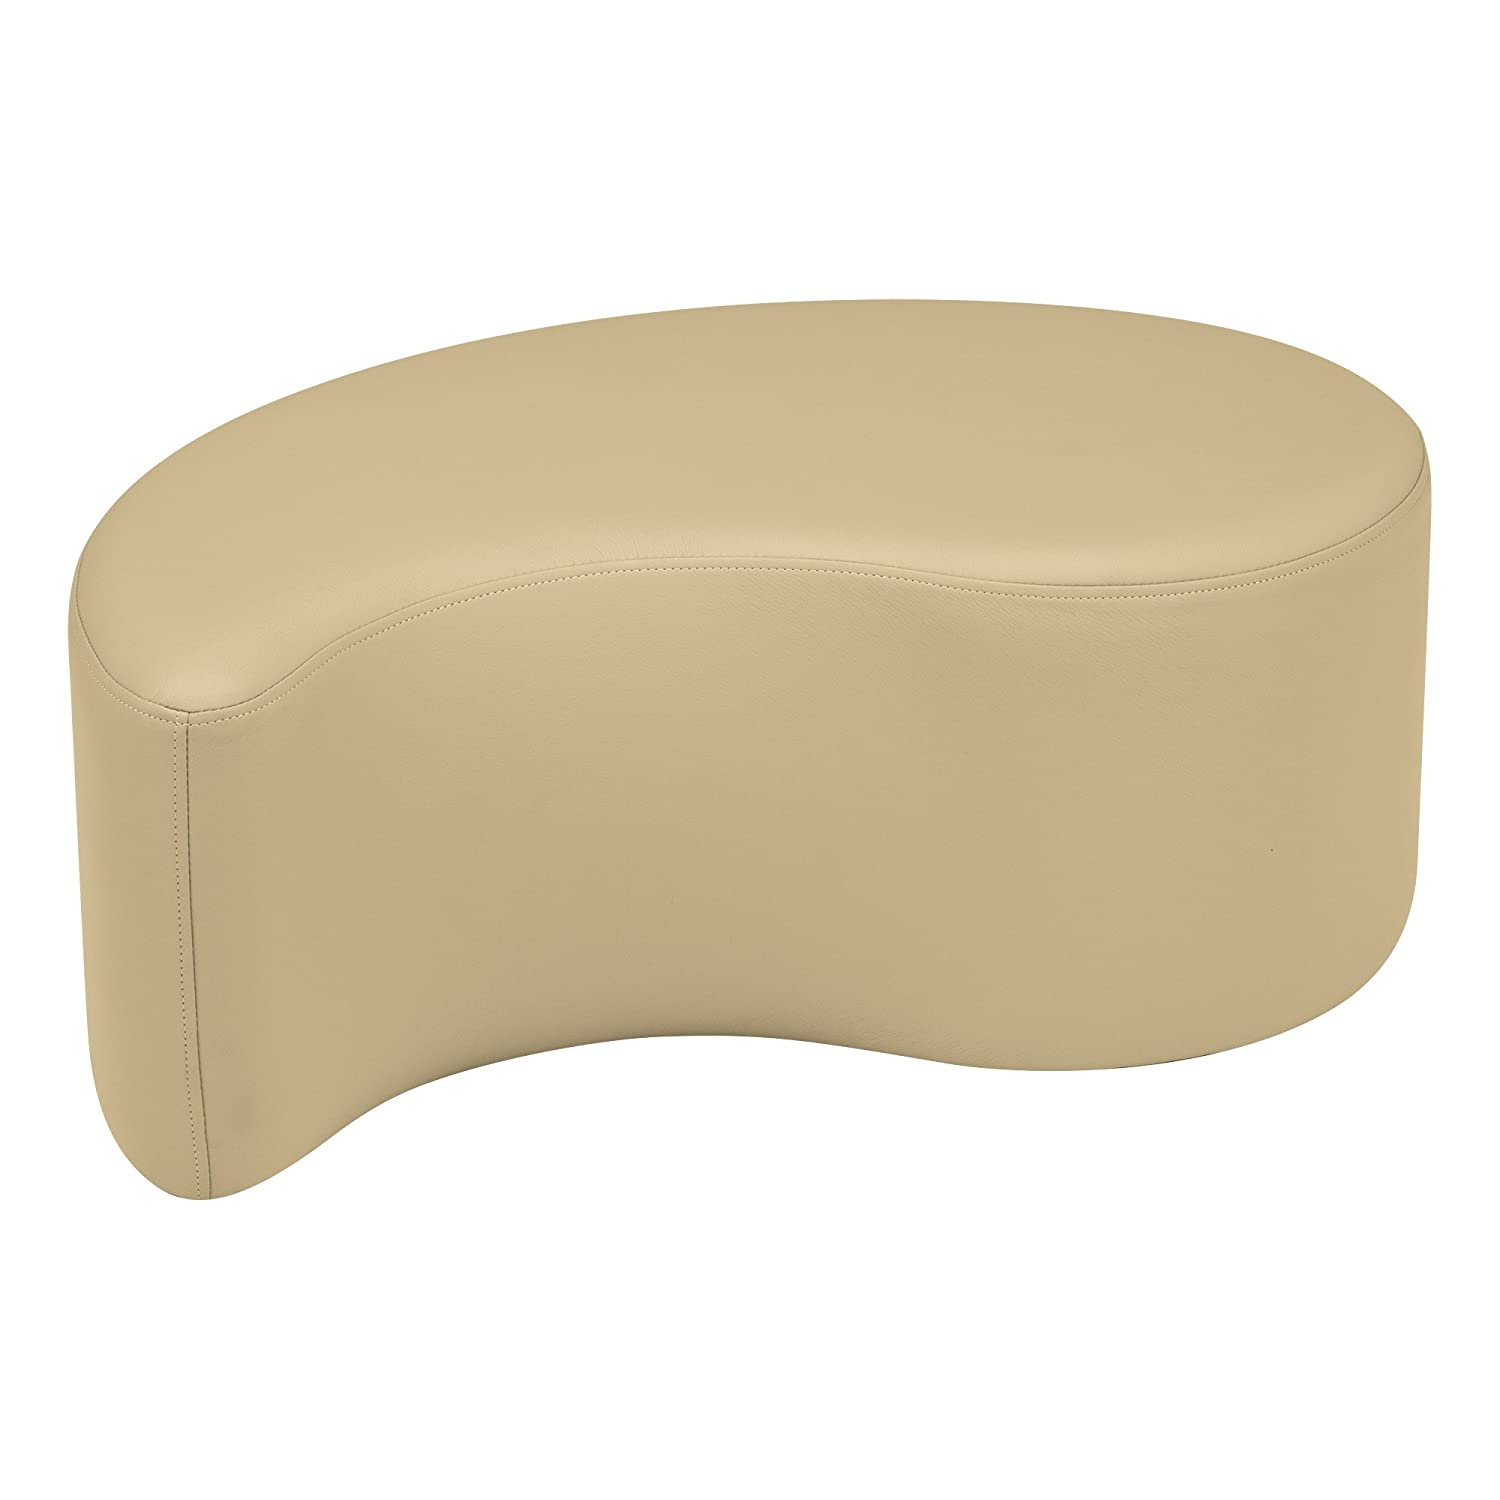 Sand 12  Sprogs Vinyl Soft Seating Teardrop Stool Bench, 18  H, bluee, SPG-1002BL-A